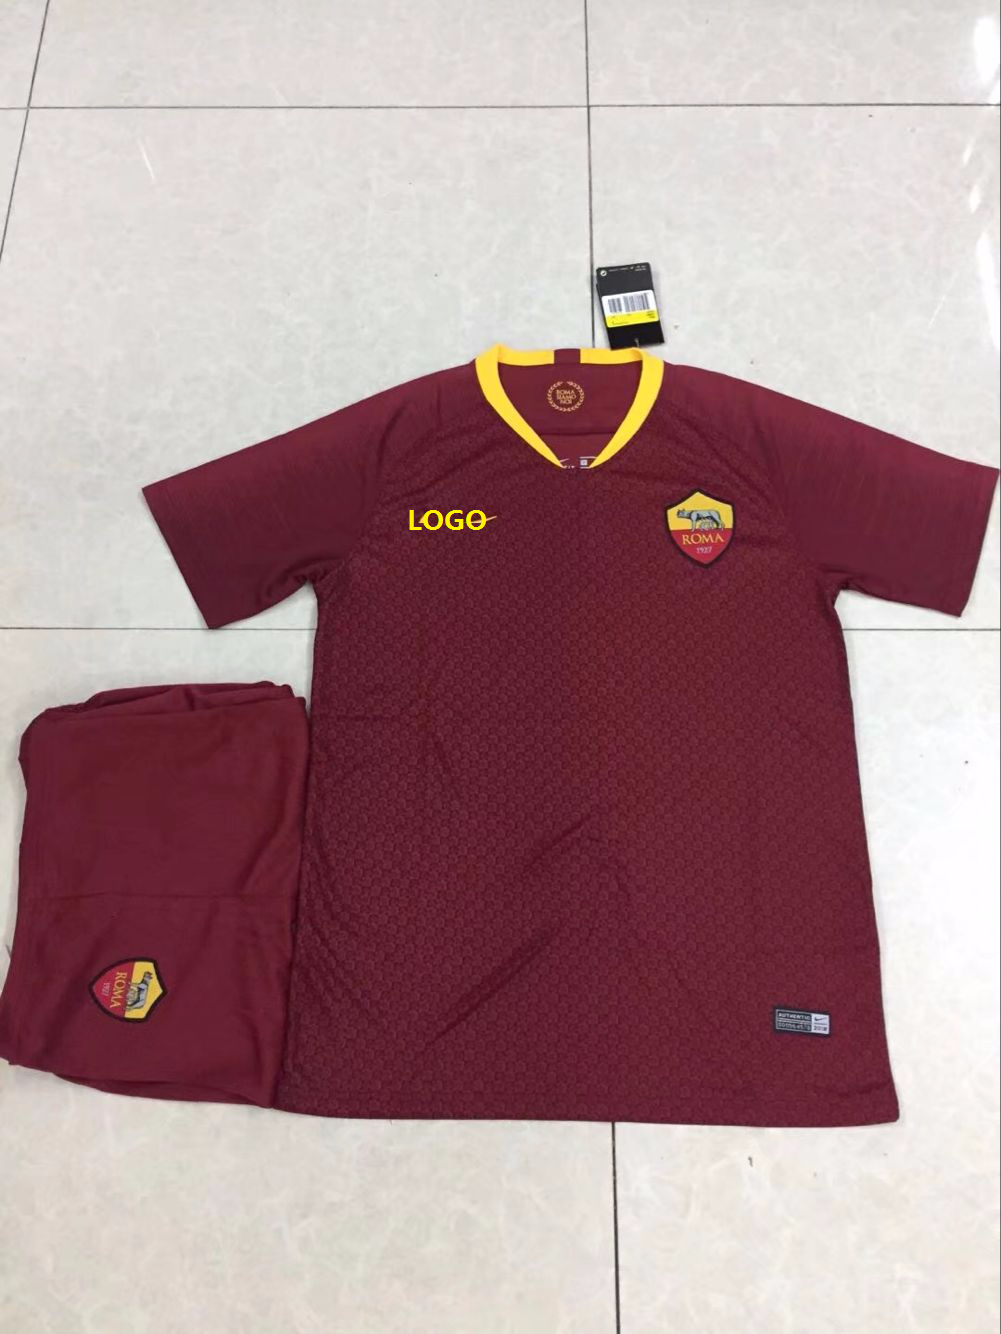 5d075b305 2018/19 AAA Men Roma Home Red Soccer Uniform Adult Football Kits ...